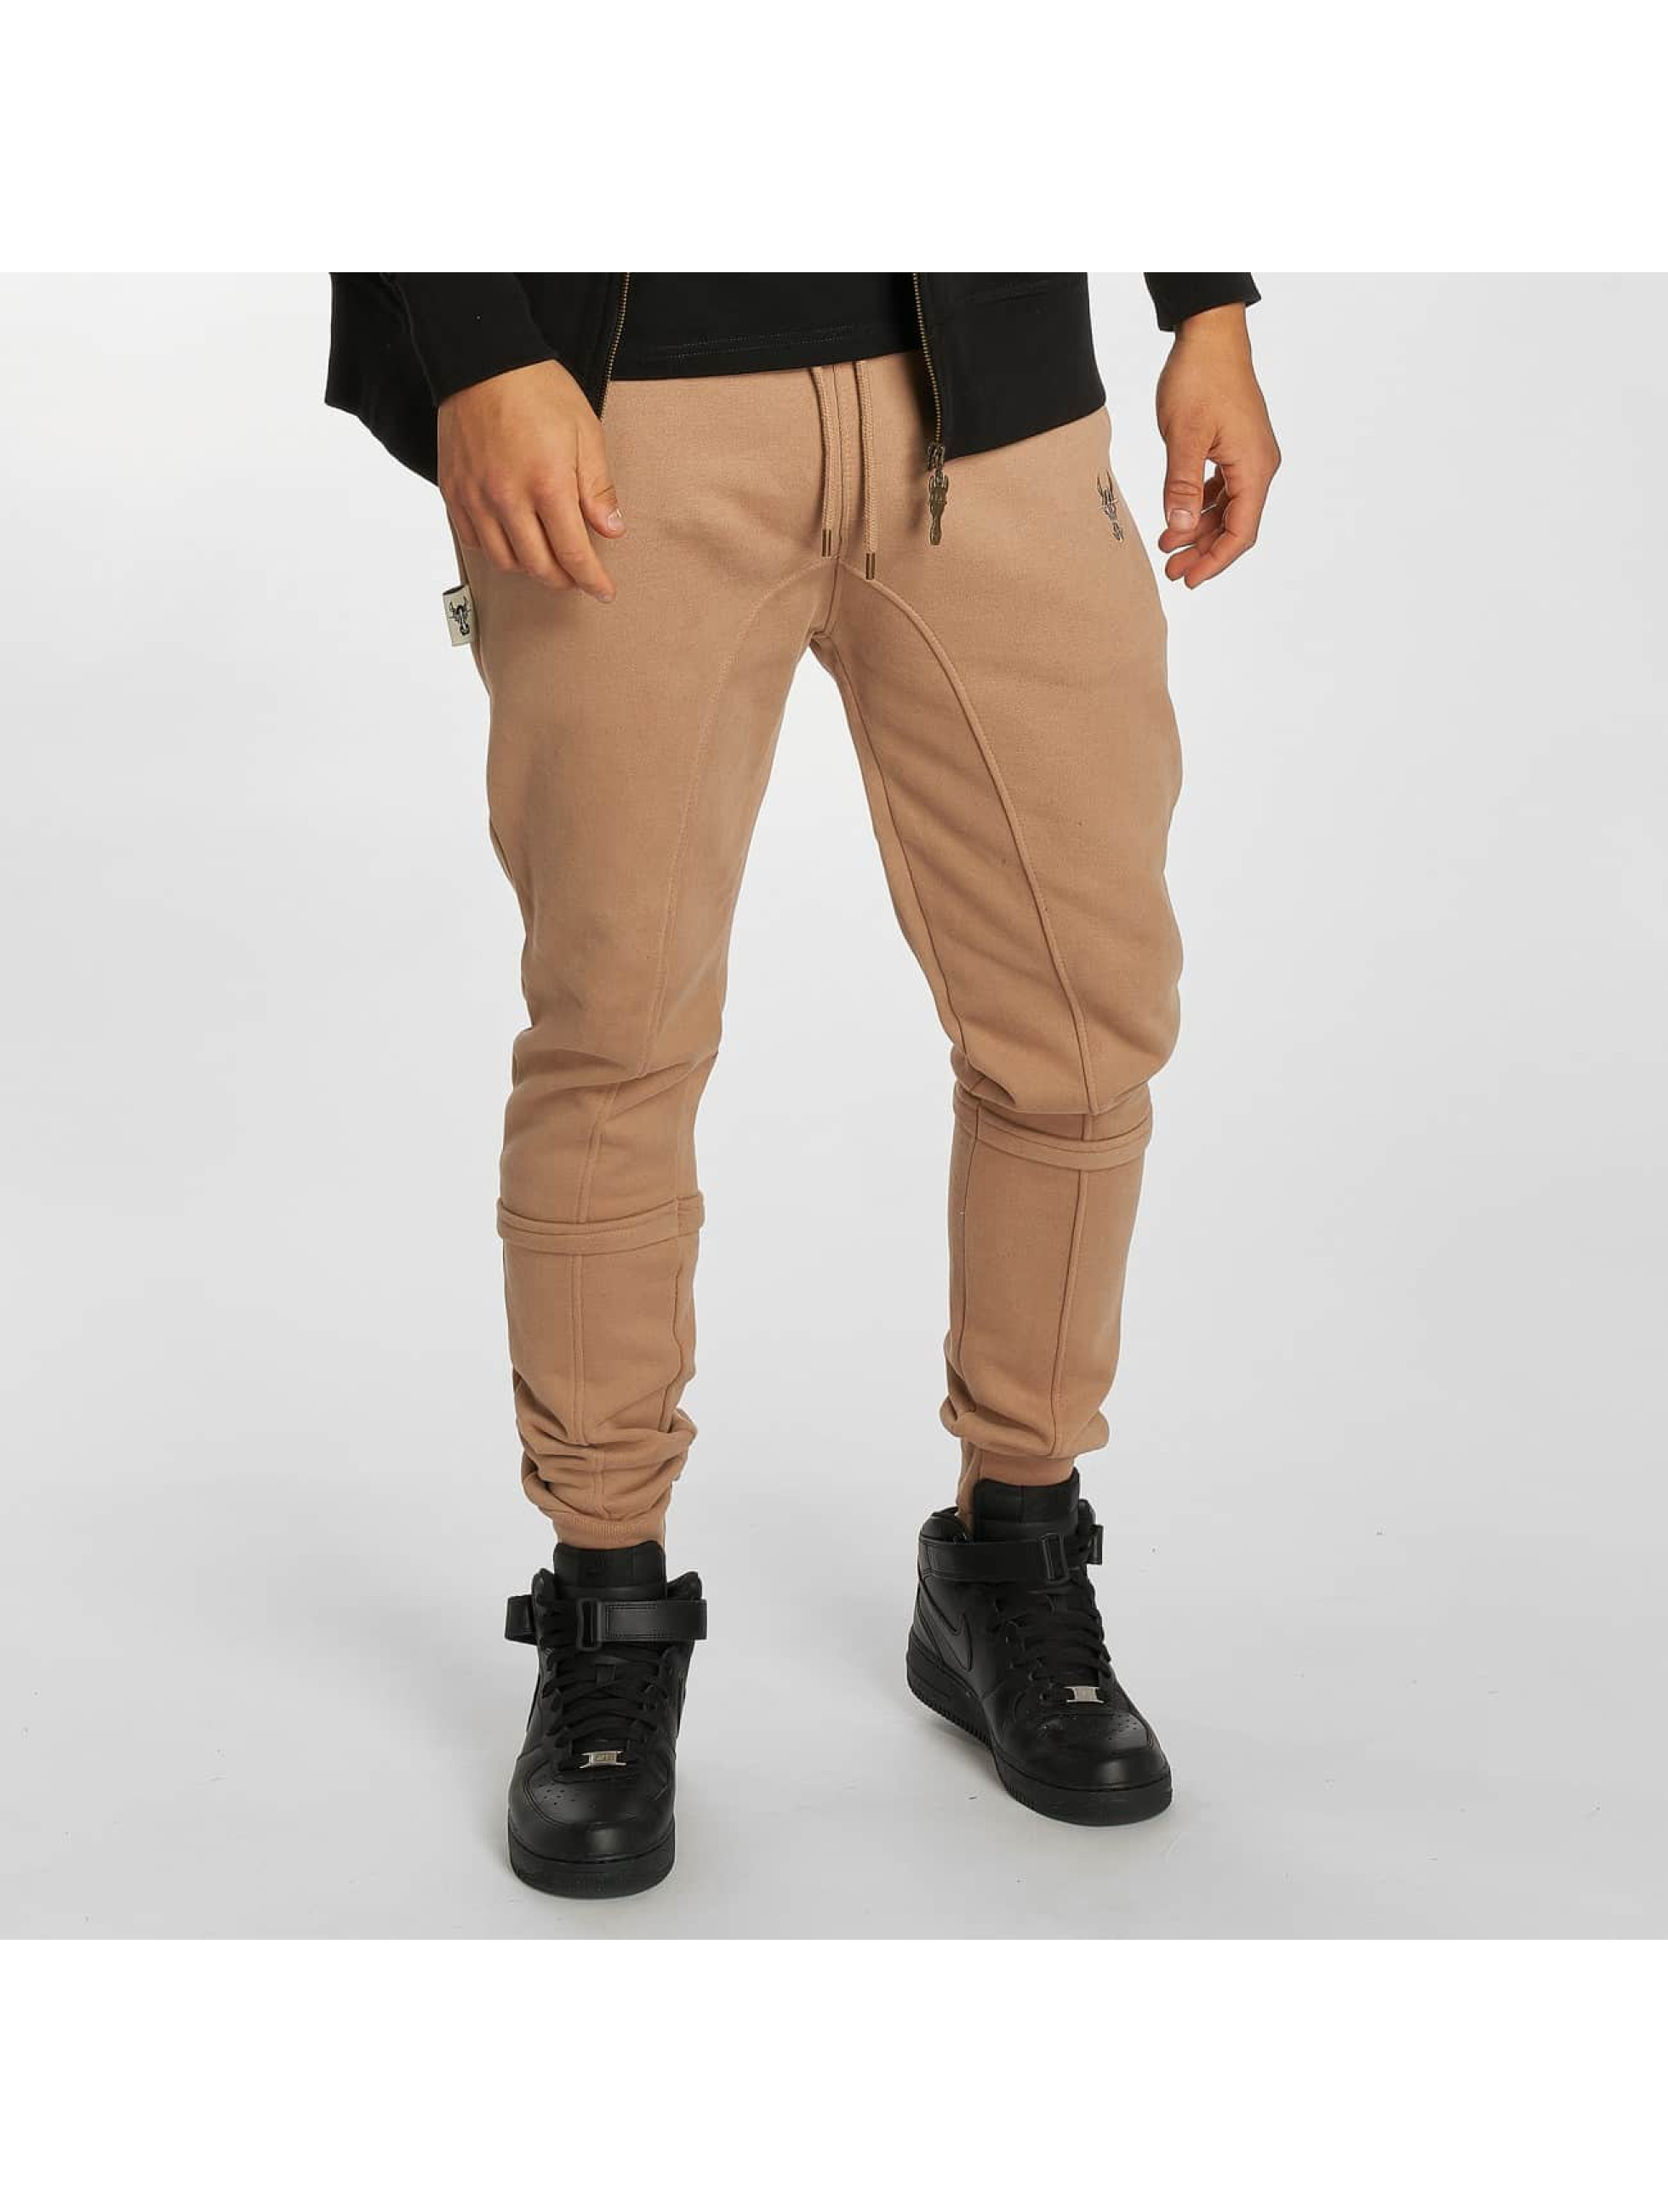 Cavallo de Ferro / Sweat Pant Bull in brown XL